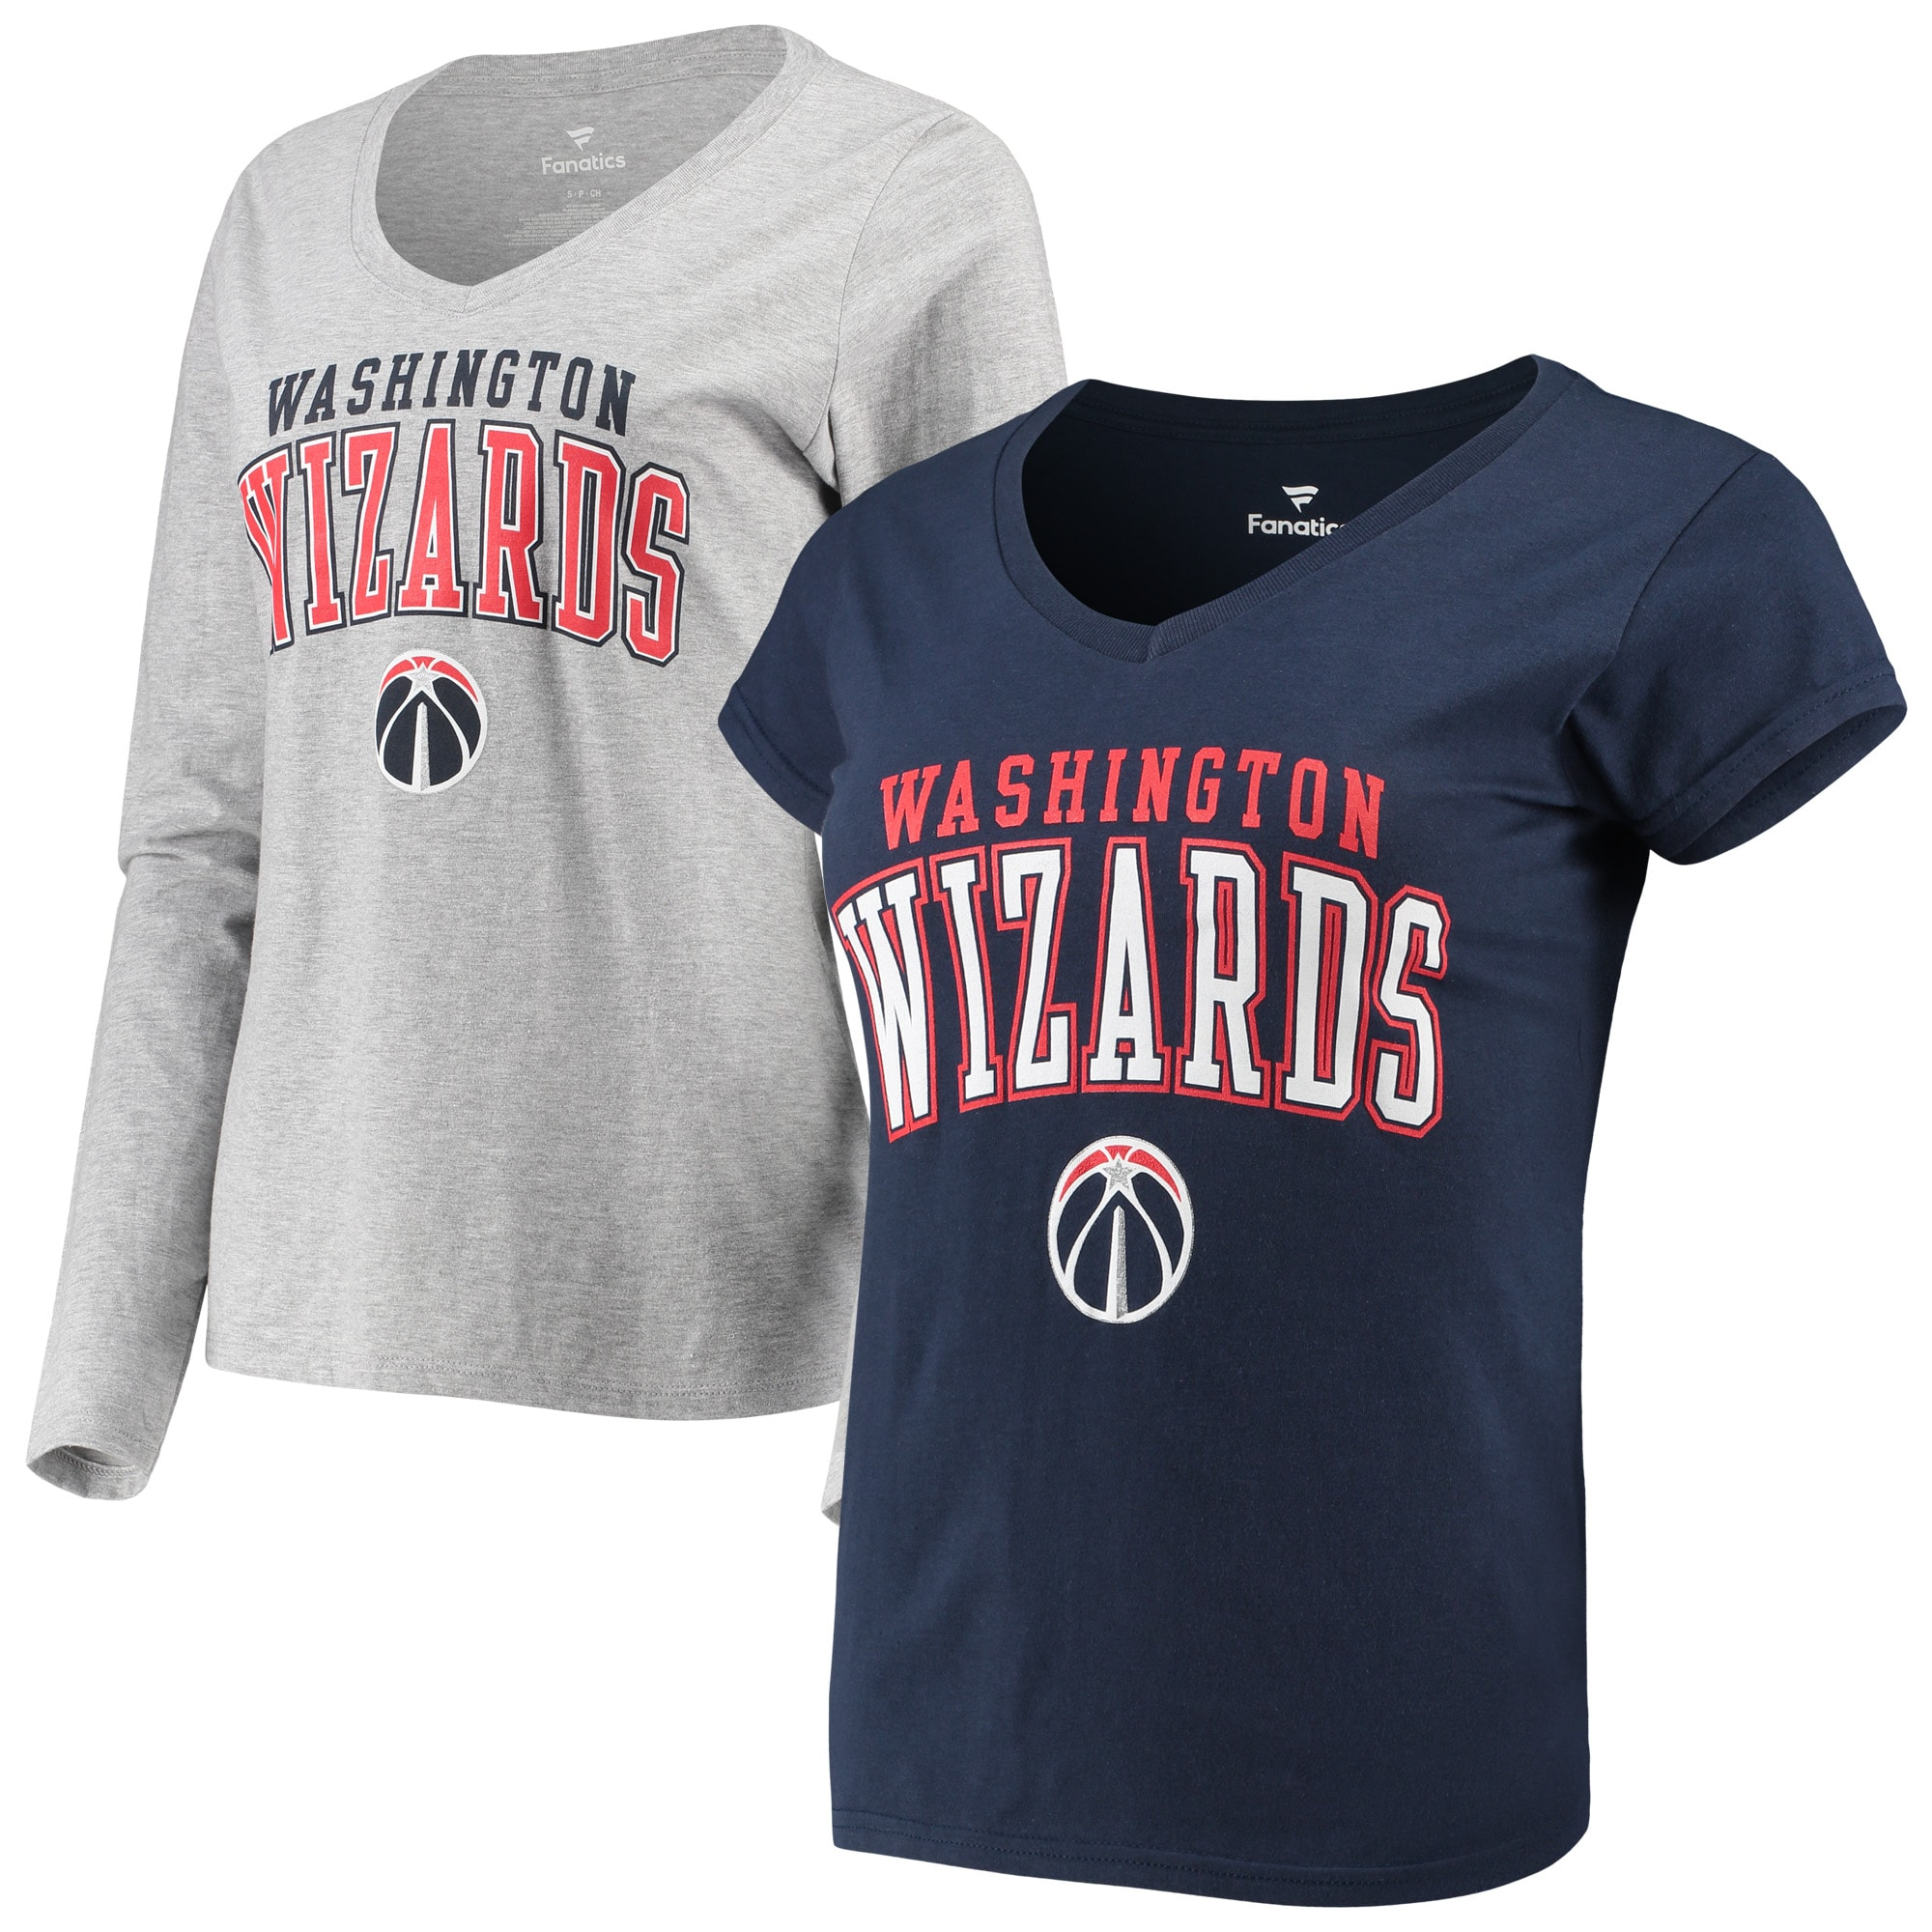 Washington Wizards Fanatics Branded Women's Square V-Neck T-Shirt Combo Set - Navy/Gray